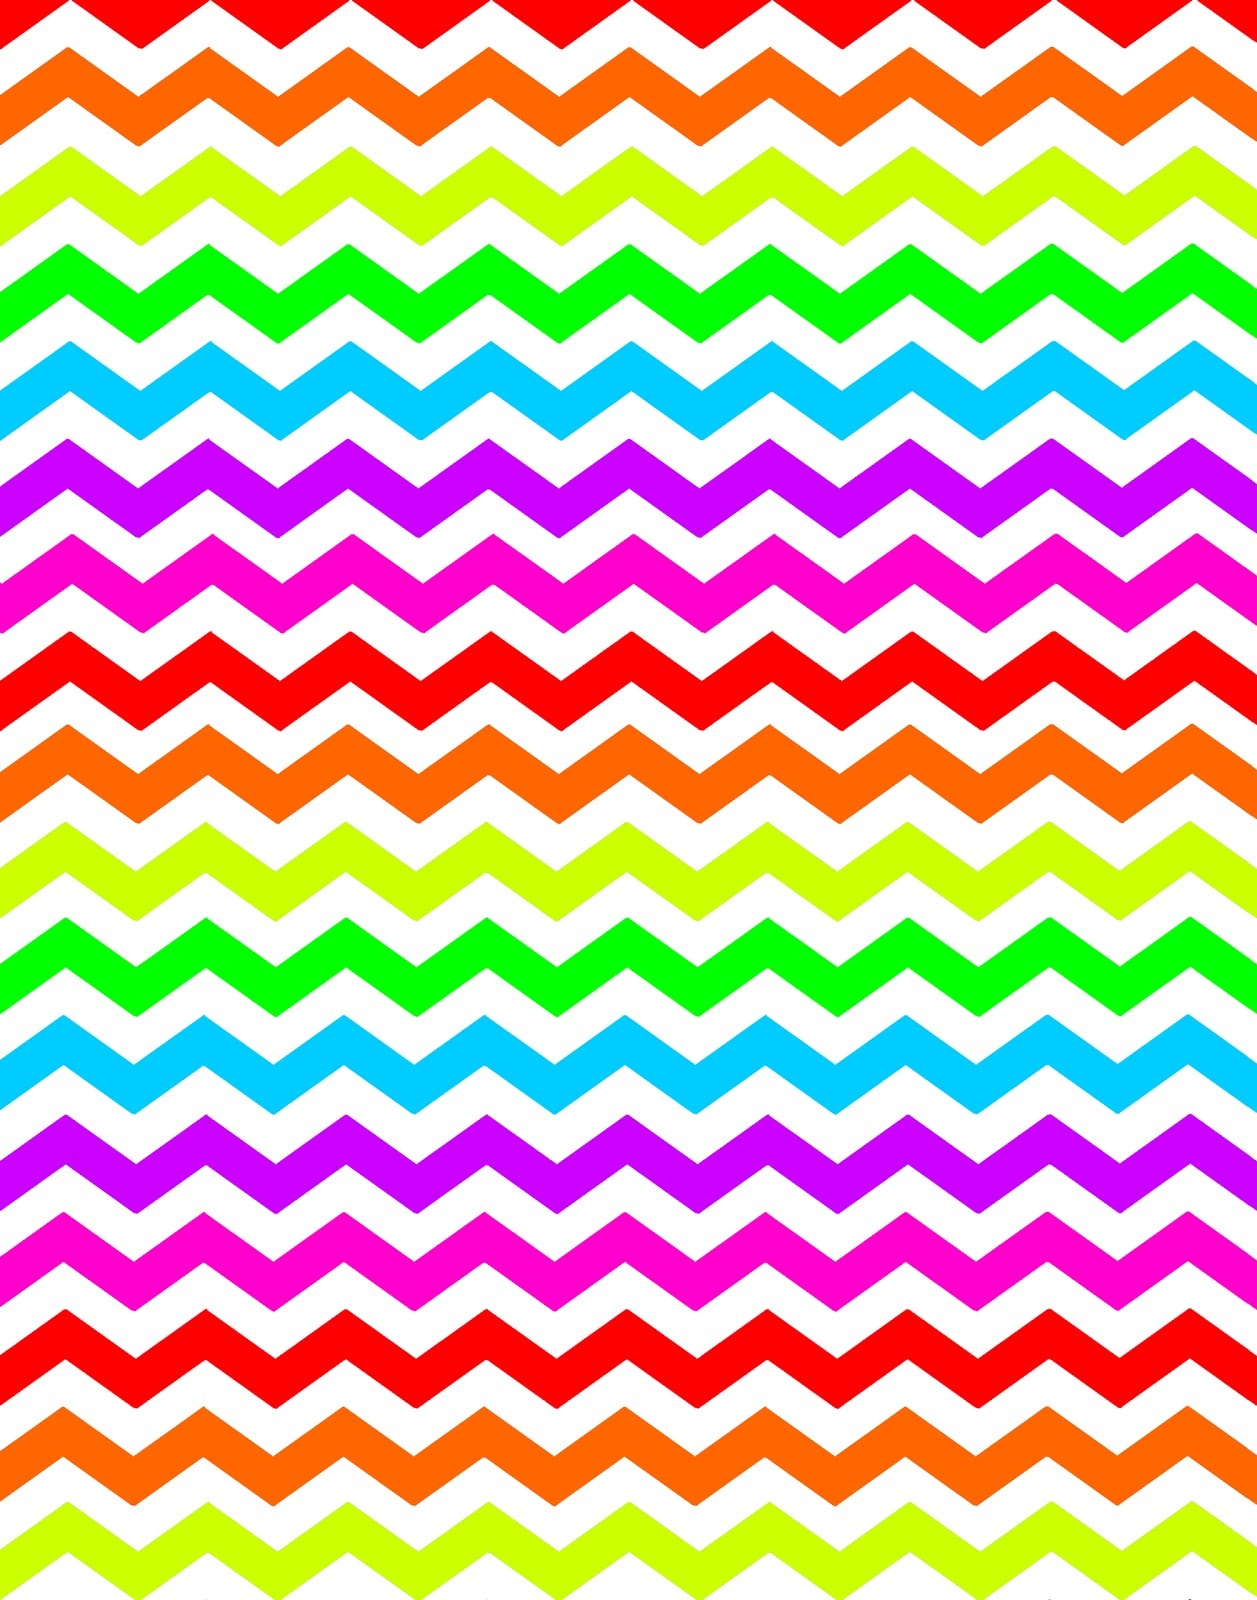 16 New Colors Chevron Background Patterns! - Chevron Pattern Printable Free